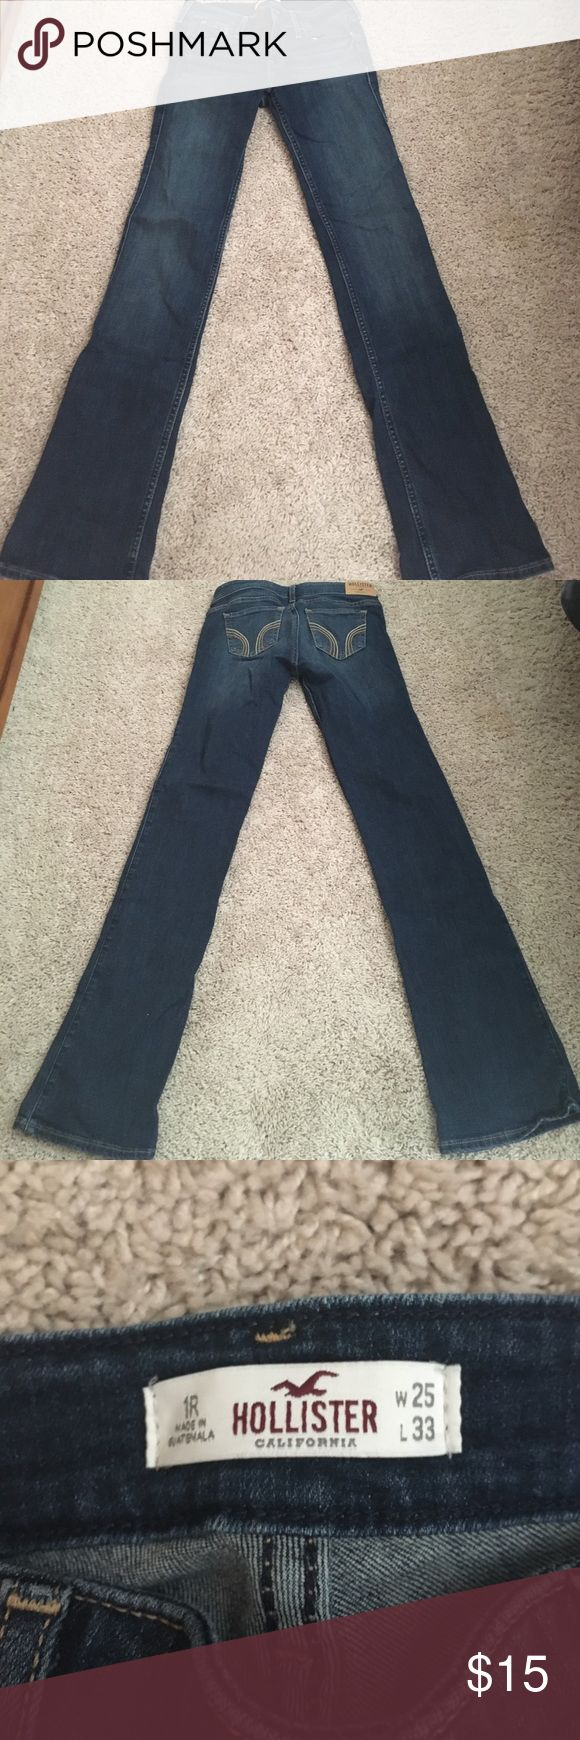 Hollister boot cut jeans Hollister dark wash boot cut jeans size 1 regular, no cuts, holes, or snags Hollister Jeans Boot Cut